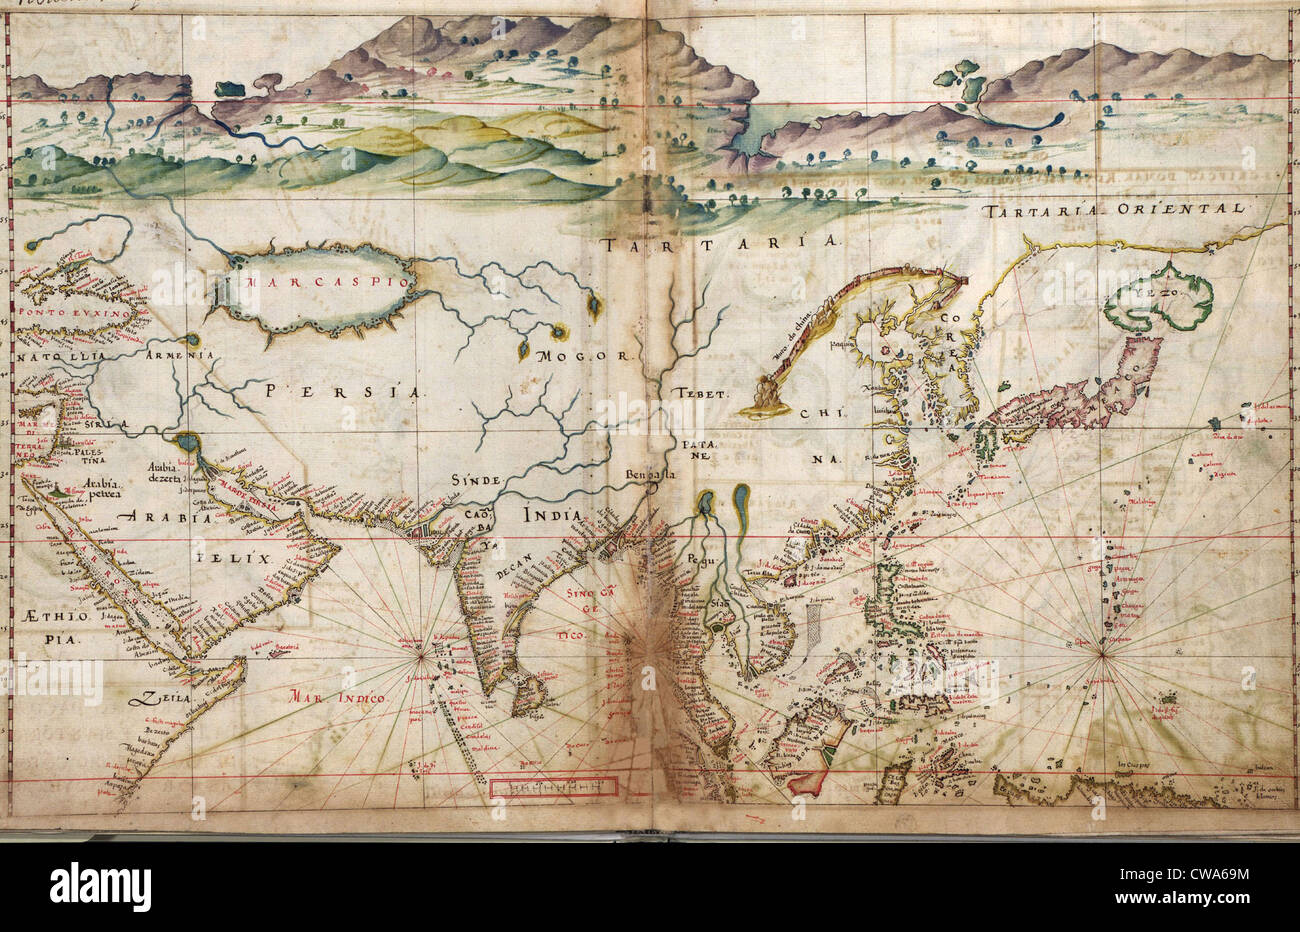 1630 Portuguese maps, showing details of Asian coastal forts and cities, gathered by a century of the Portuguese - Stock Image